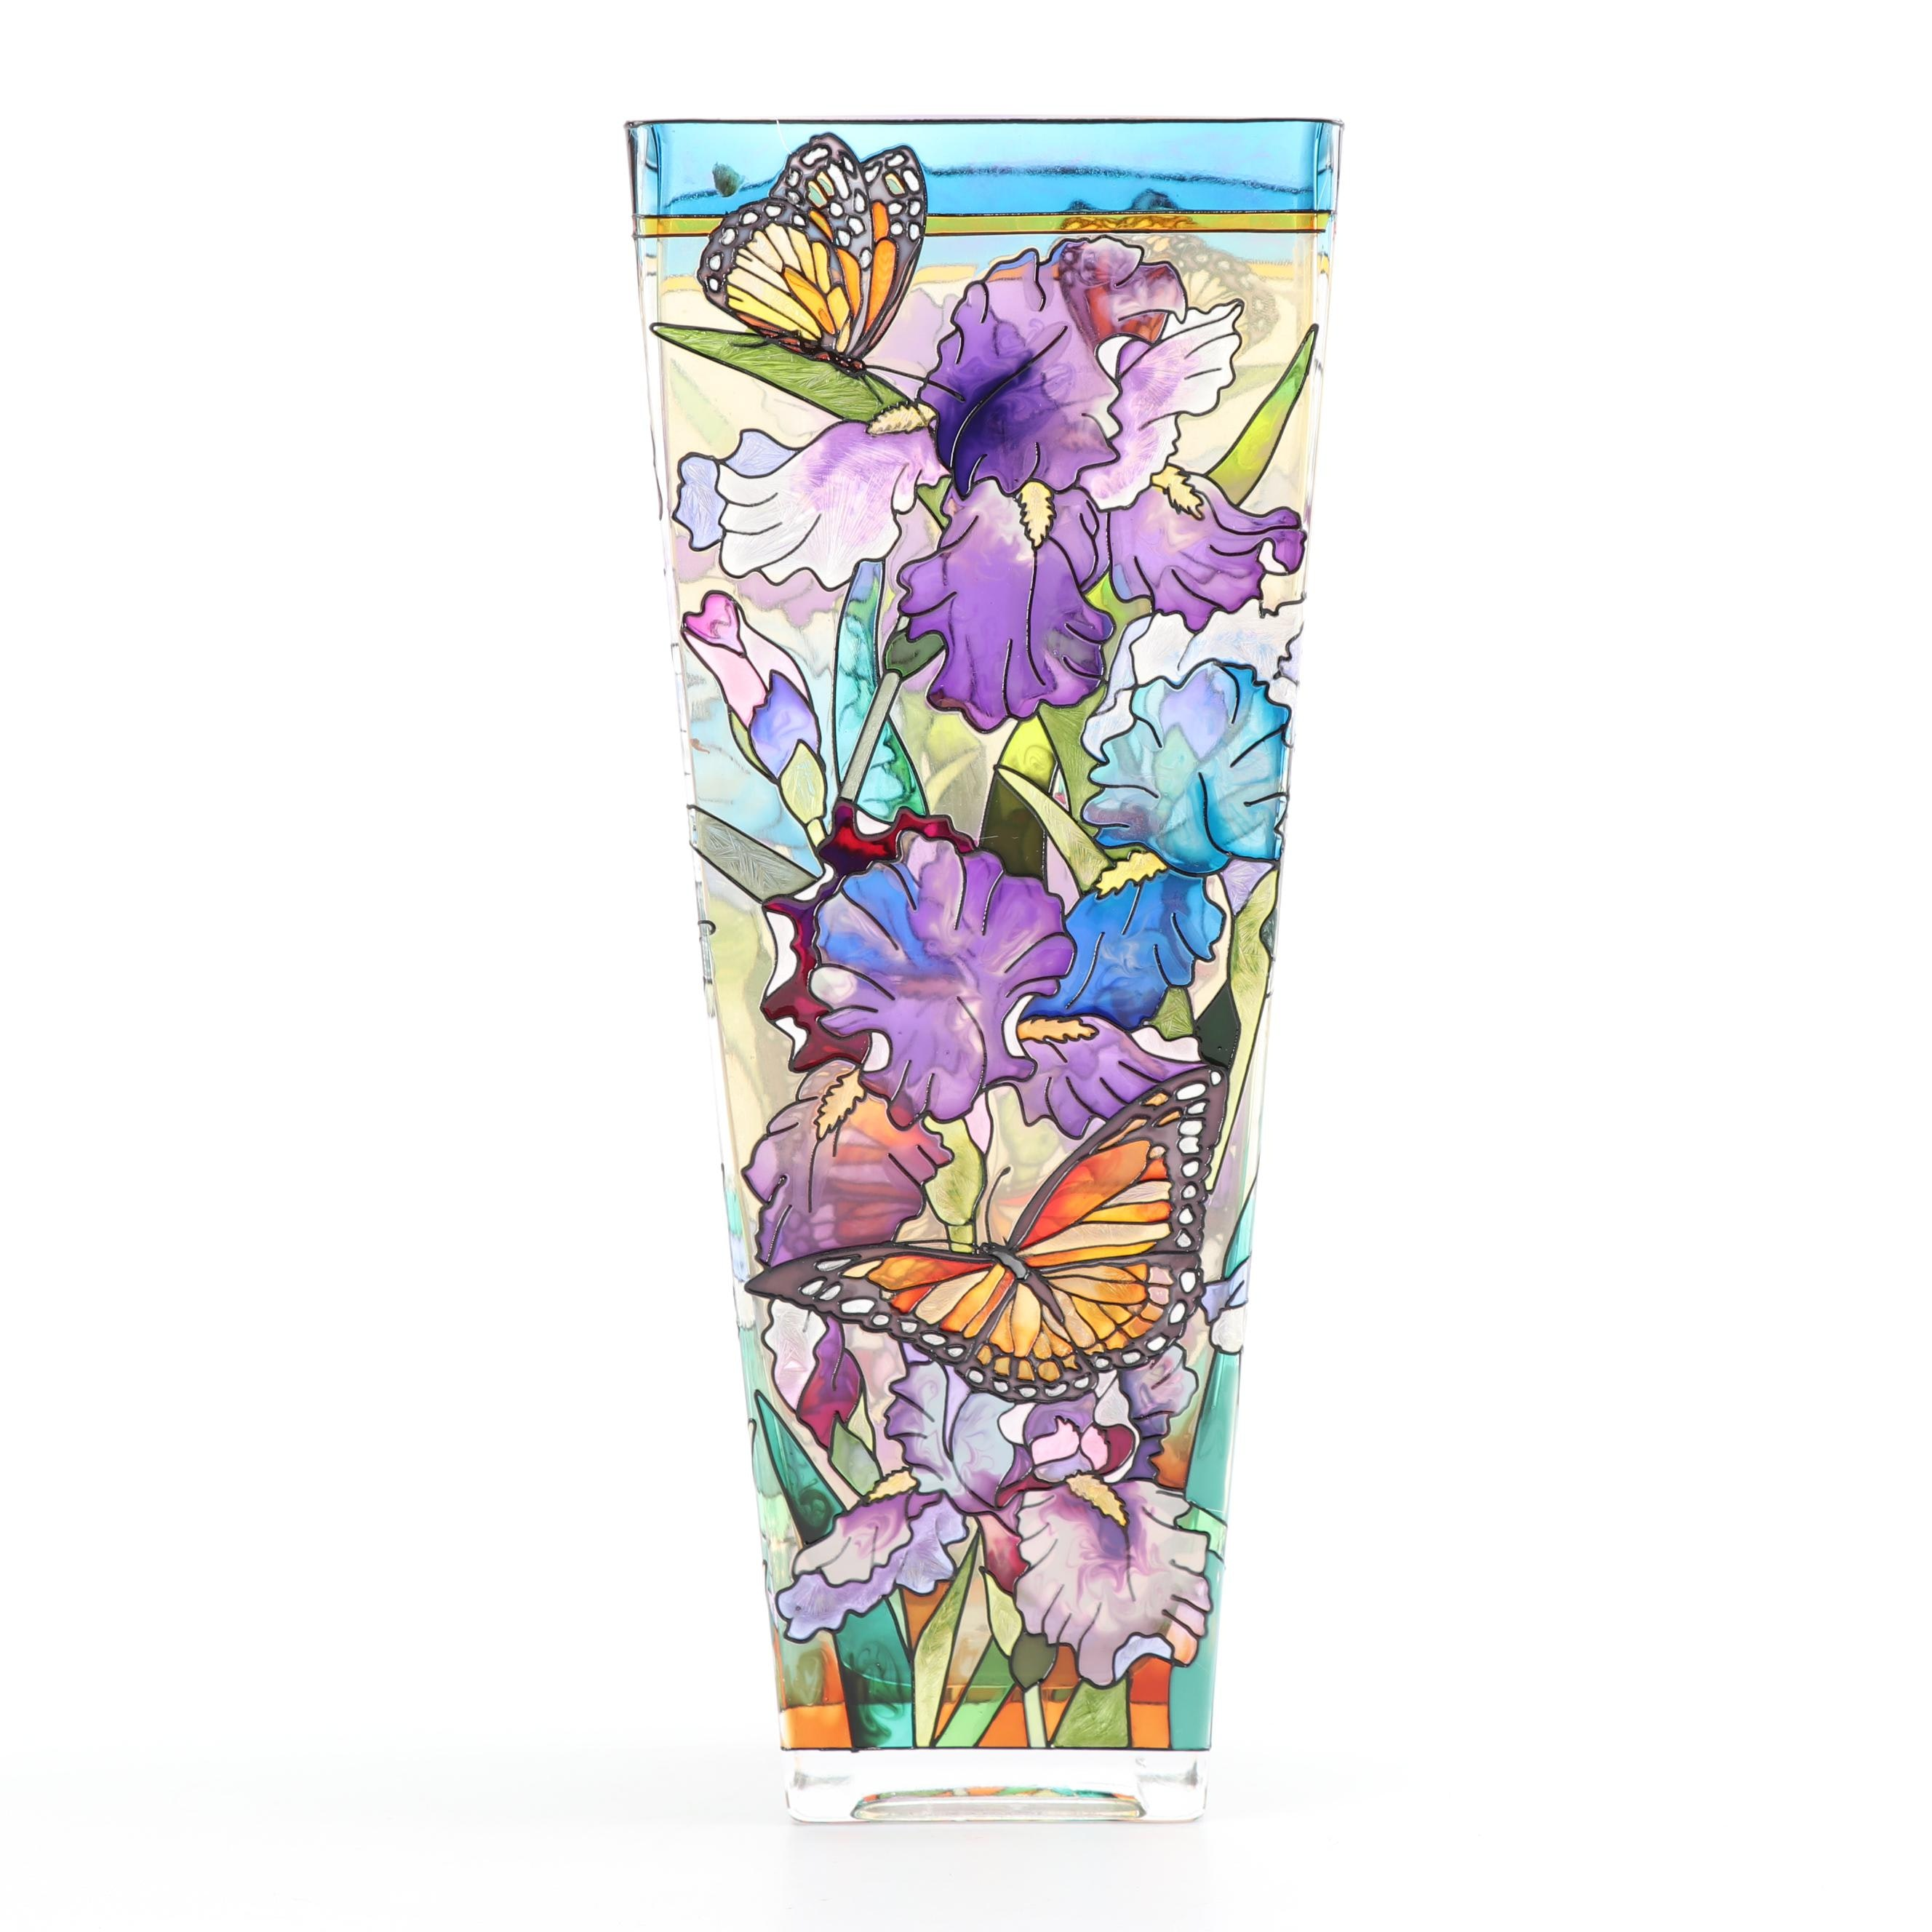 AMIA Studios Hand-Painted Iris Flower and Monarch Butterfly Themed Glass Vase